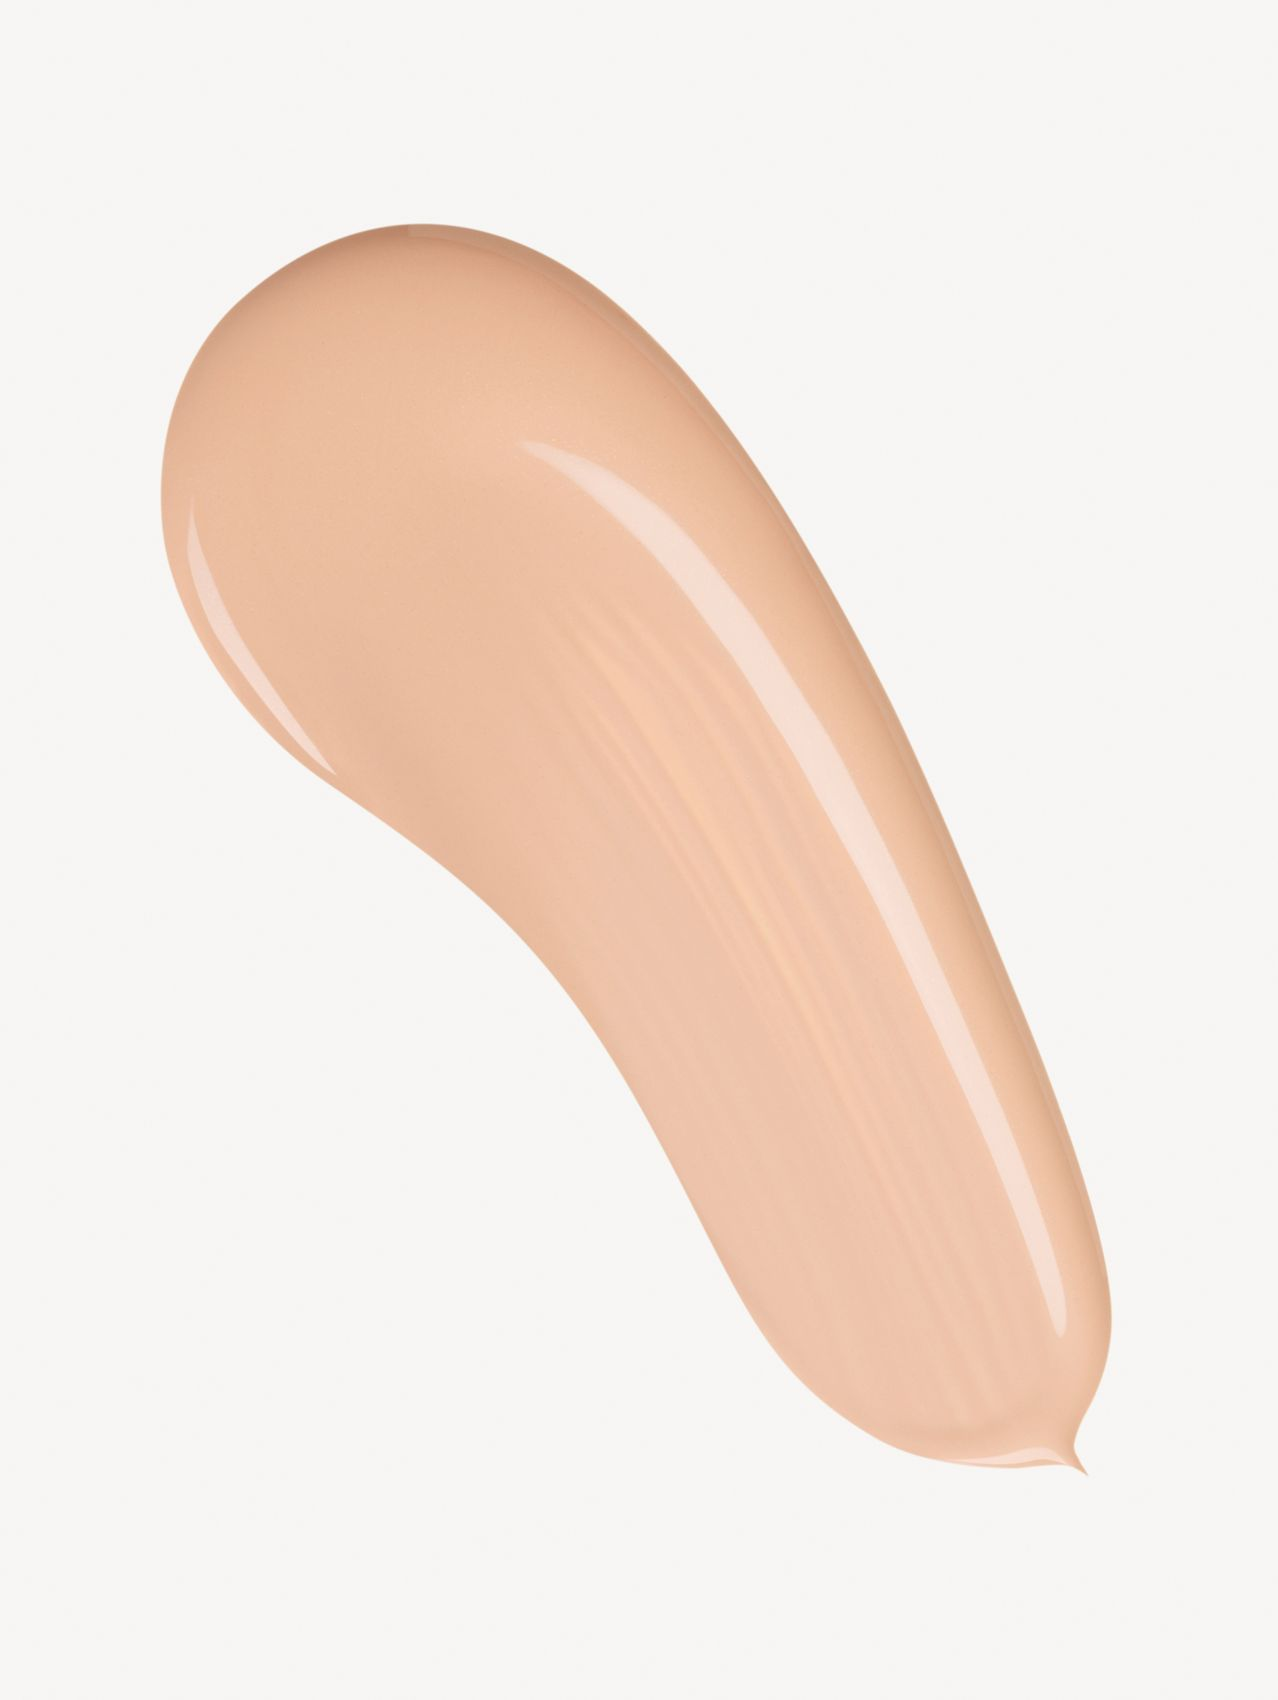 Fresh Glow Foundation SPF 15 PA+++ – Ochre Nude No.12